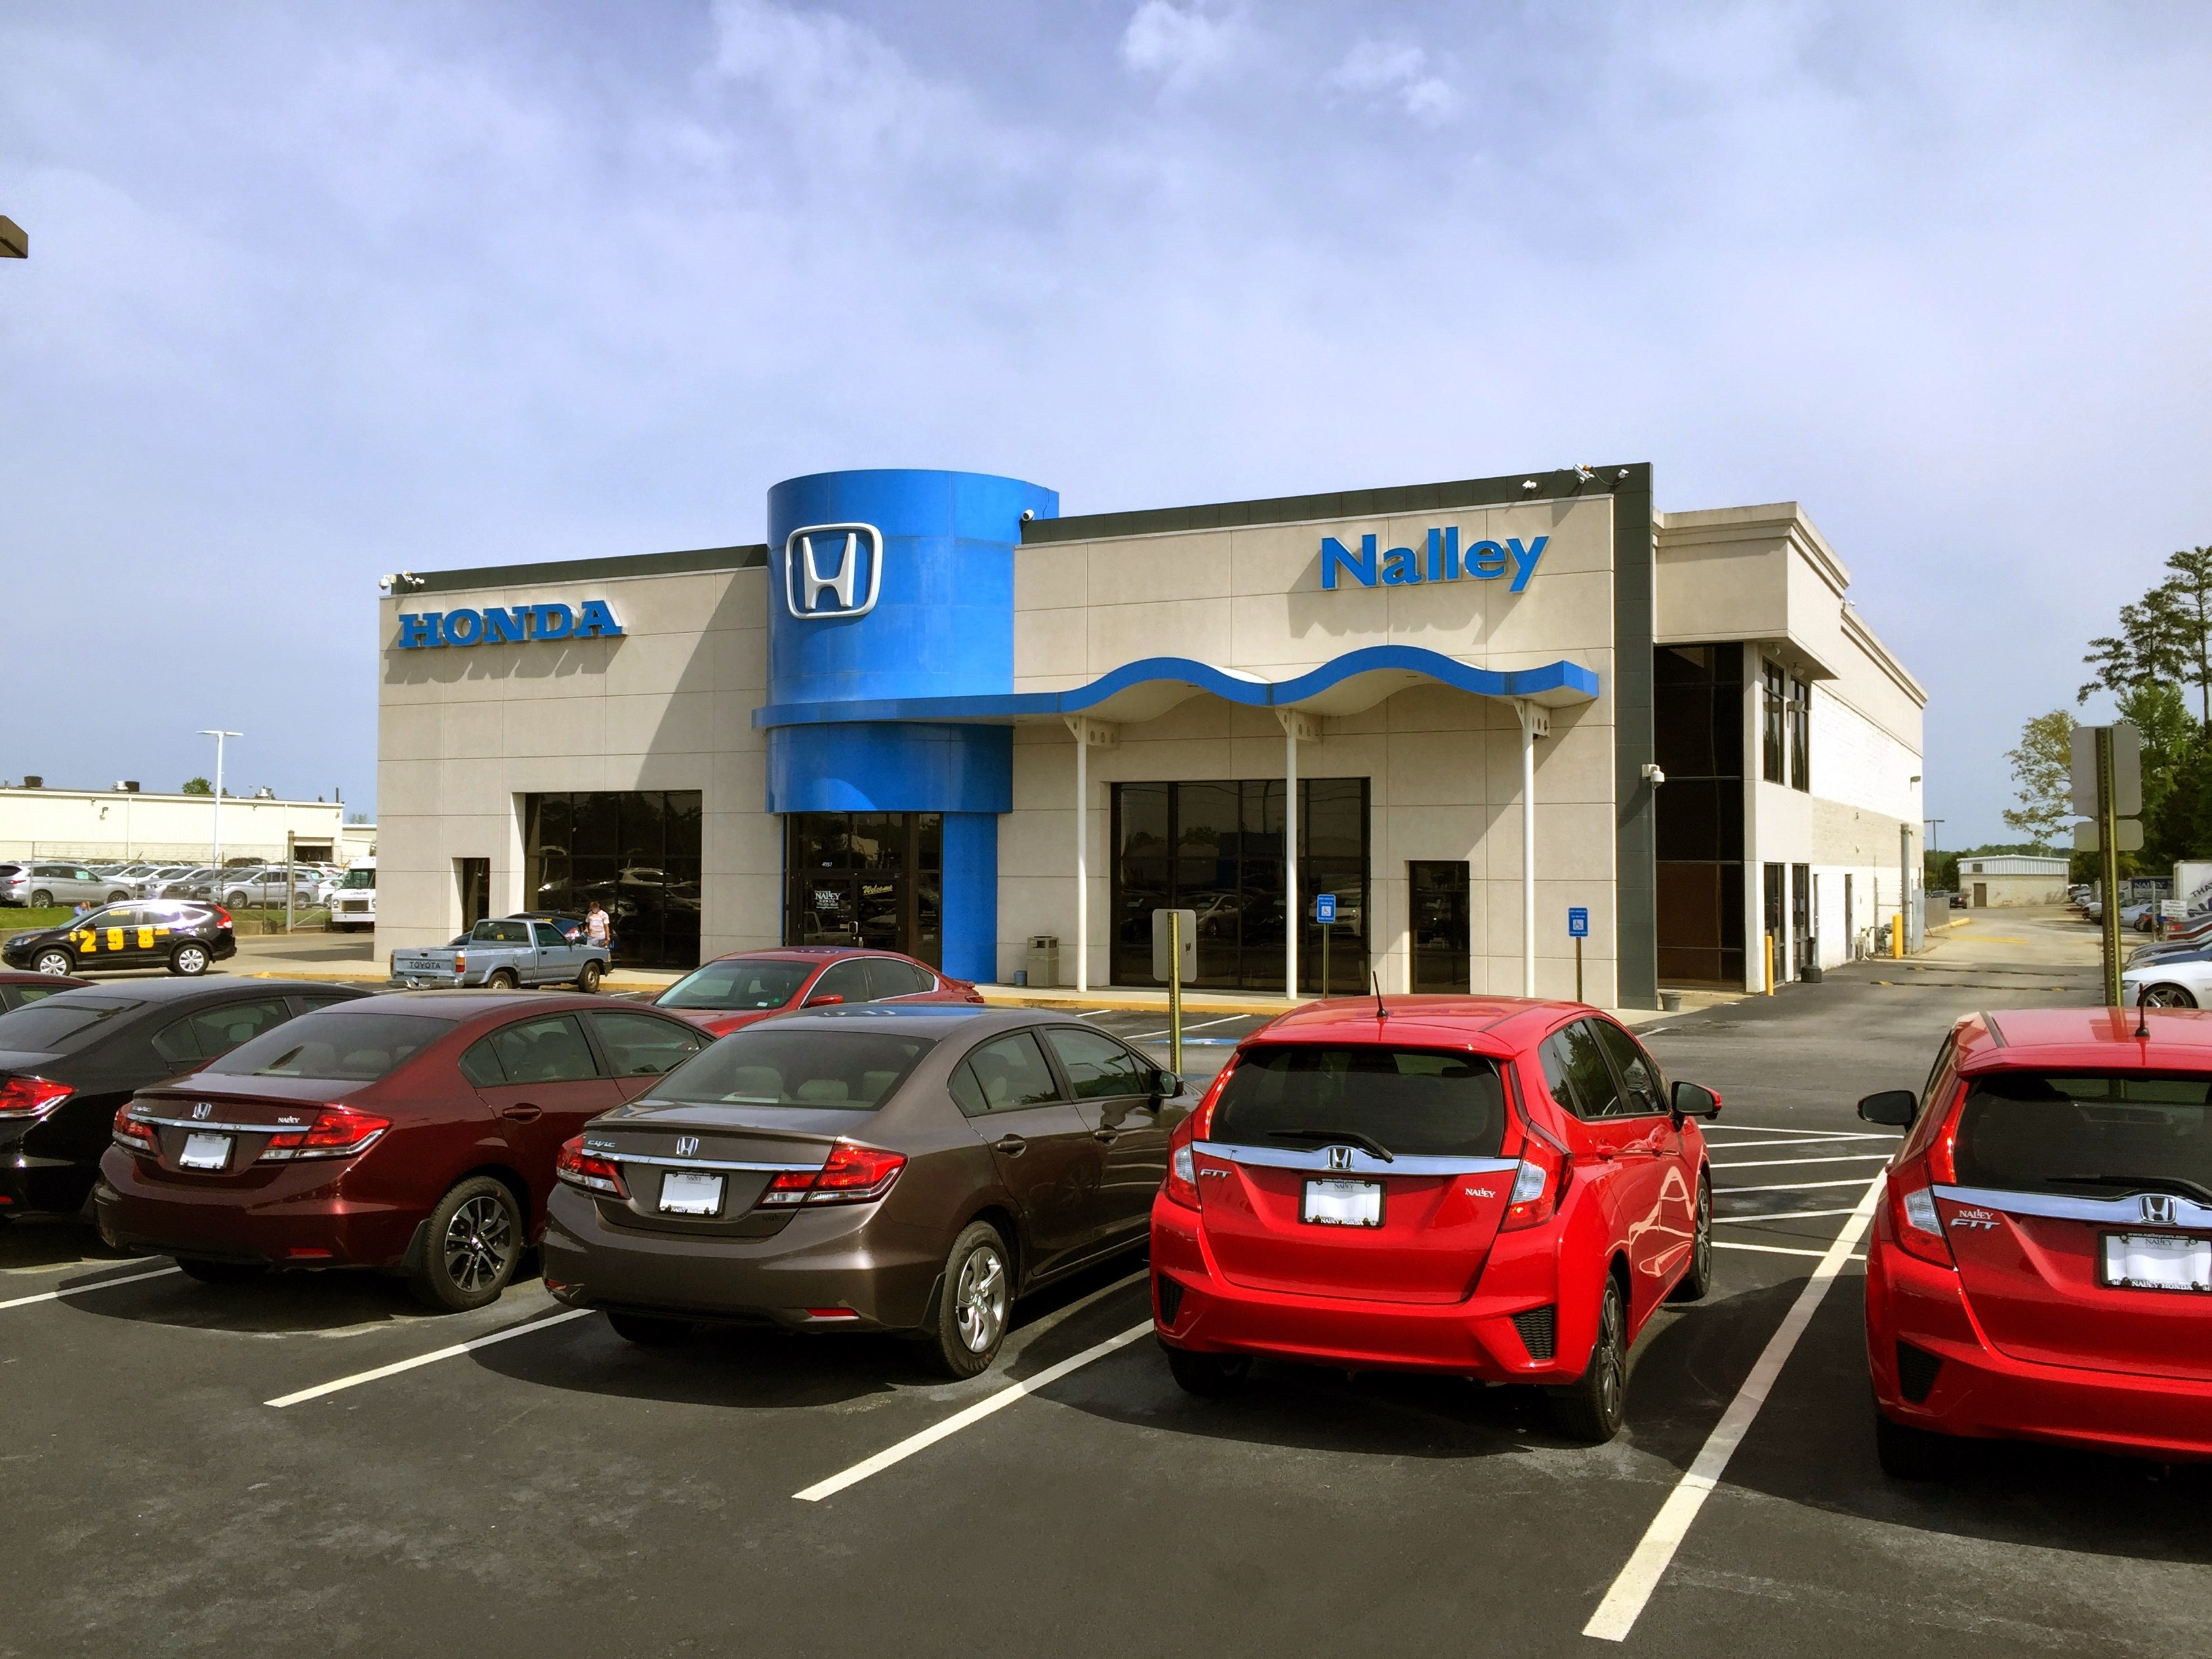 Nalley Honda Union City GA | Auto Dealers